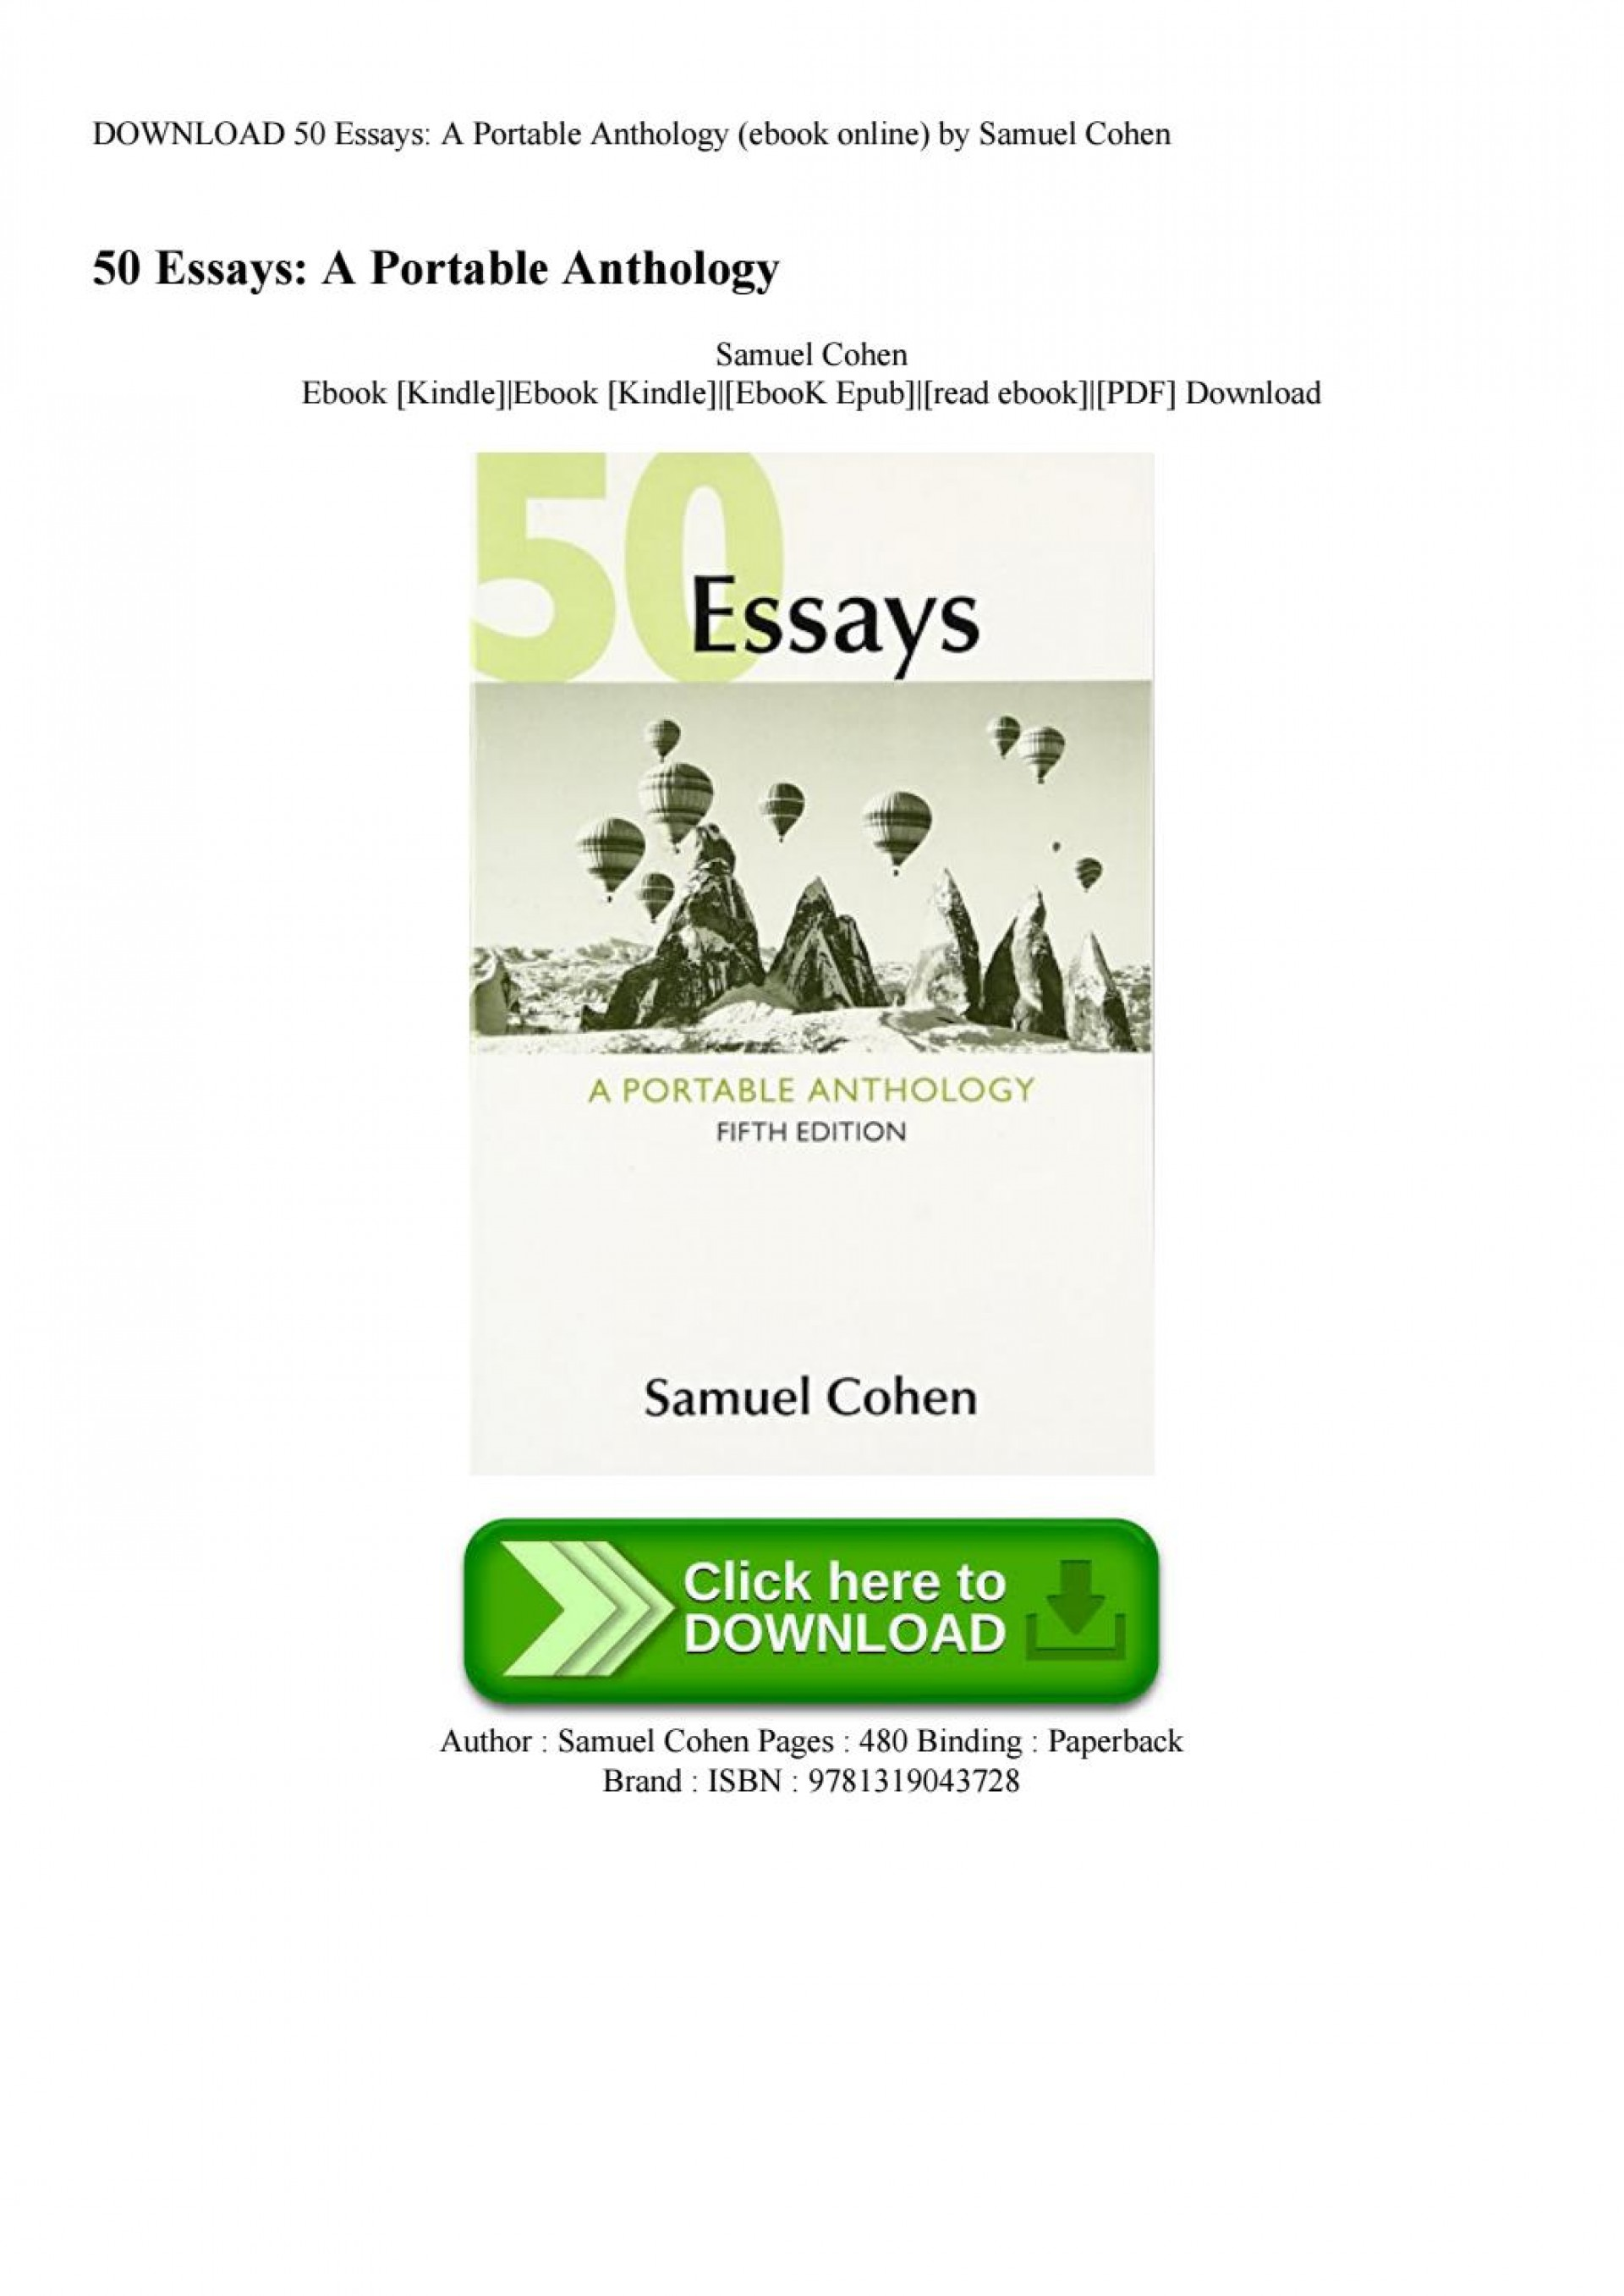 009 Essays Portable Anthology 5th Edition Pdf Page 1 Essay Fascinating 50 A 1920